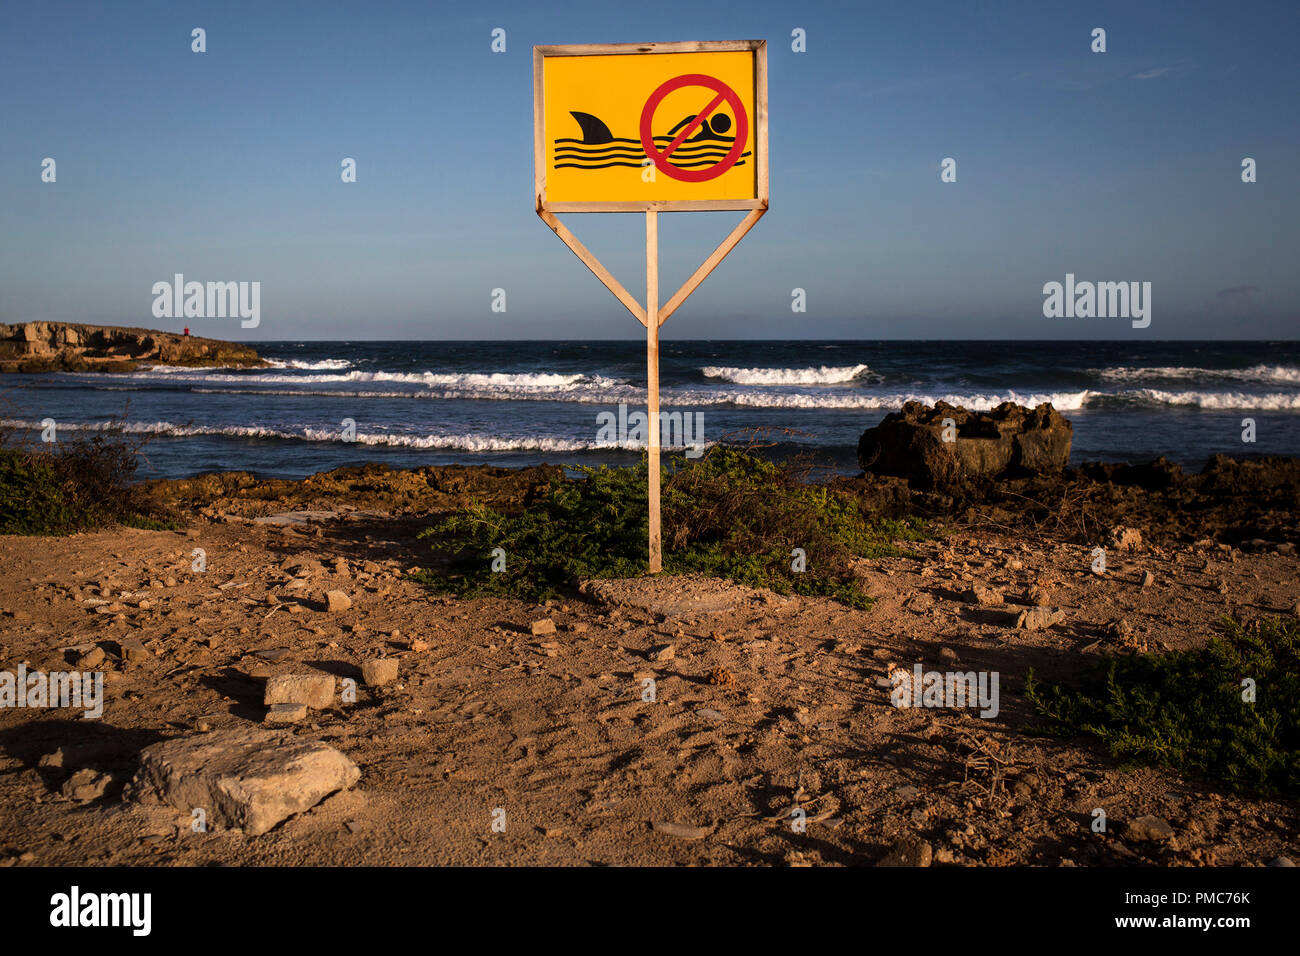 A sign to ward off swimmers against possible shark attacks is pictured inside the African Union Mission in Somalia (AMISOM) base in Mogadishu, Somalia - Stock Image